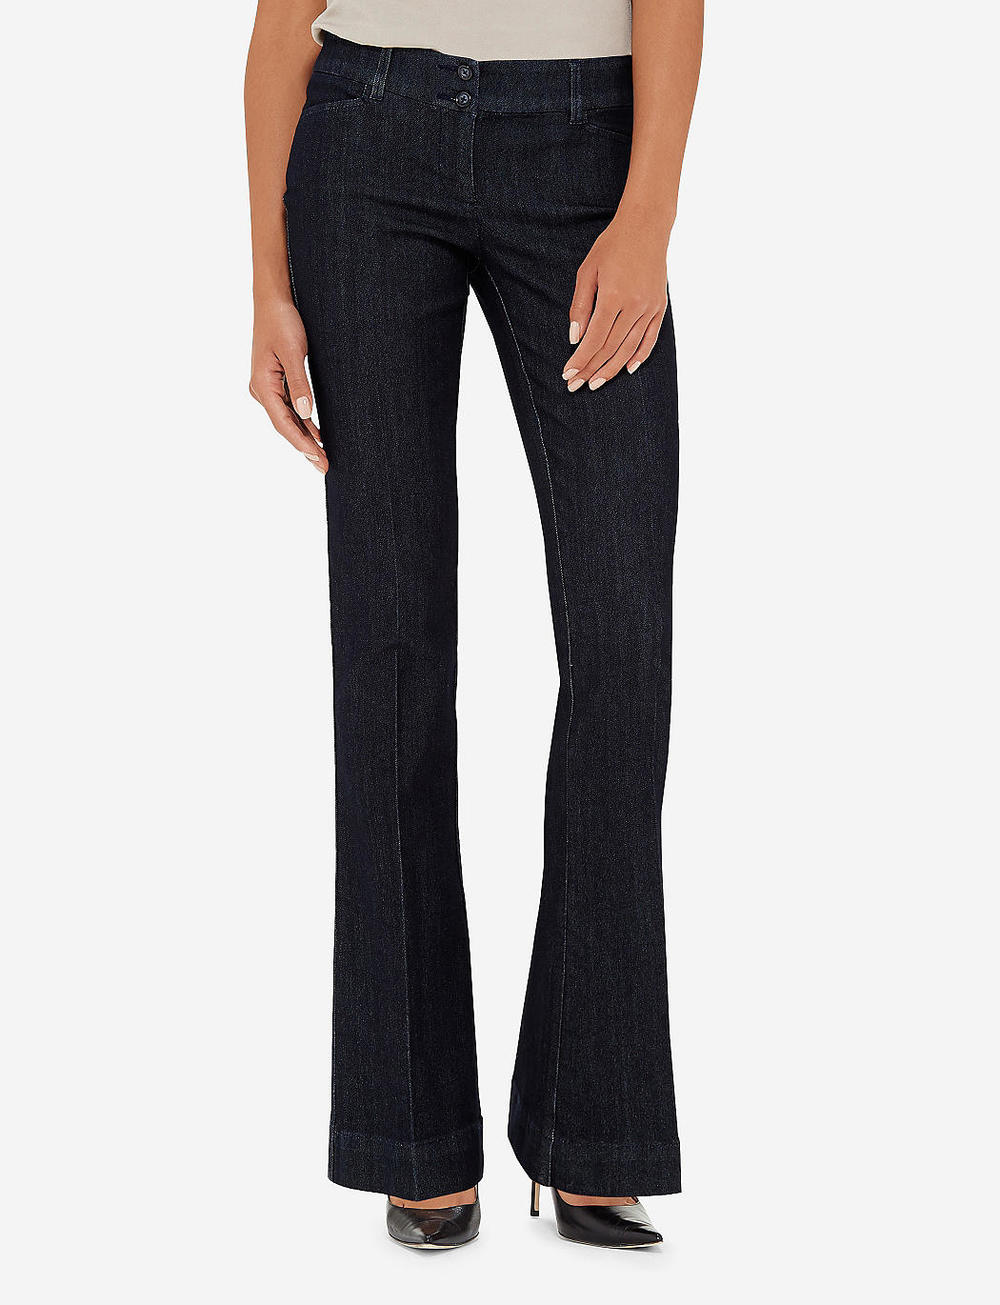 678 Fit & Flare Jeans. The Limited. Was: $79 Now: $39.